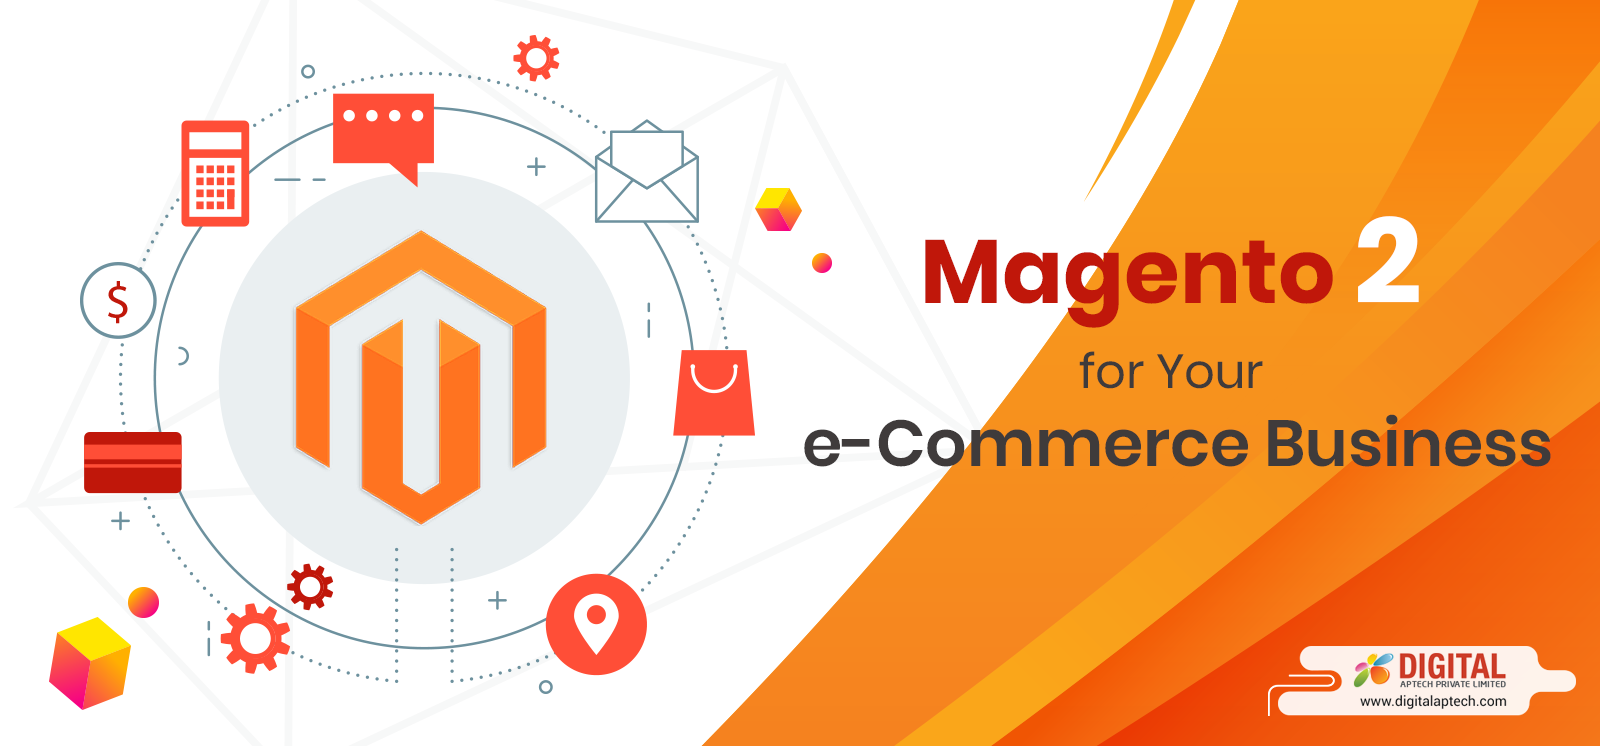 Top 7 Benefits of Magento 2 for Your e-Commerce Business